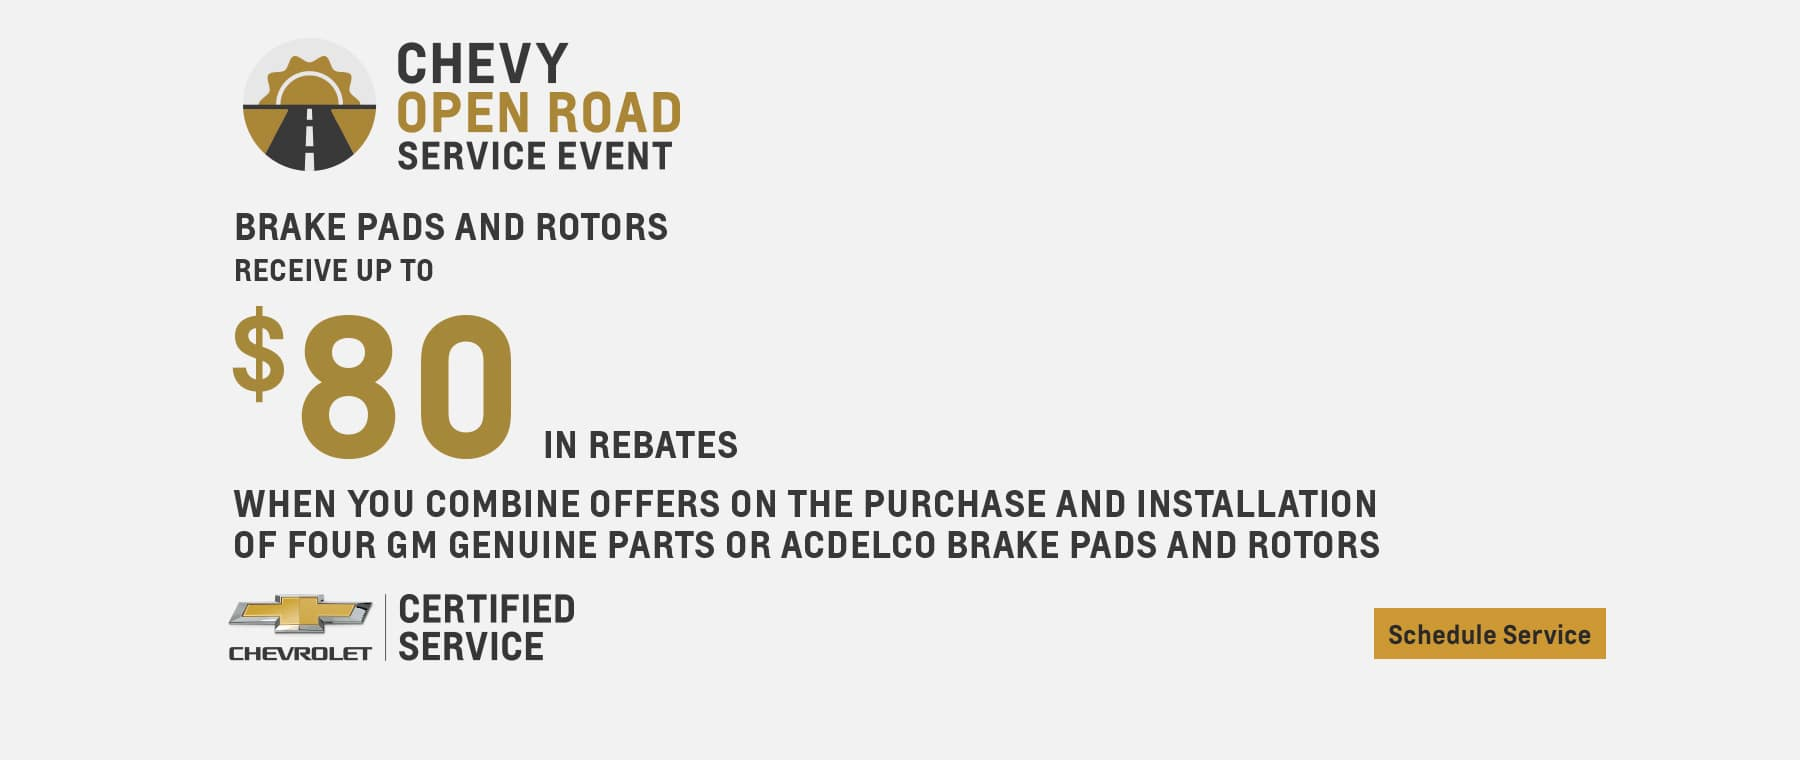 July Chevy Service Event Offer